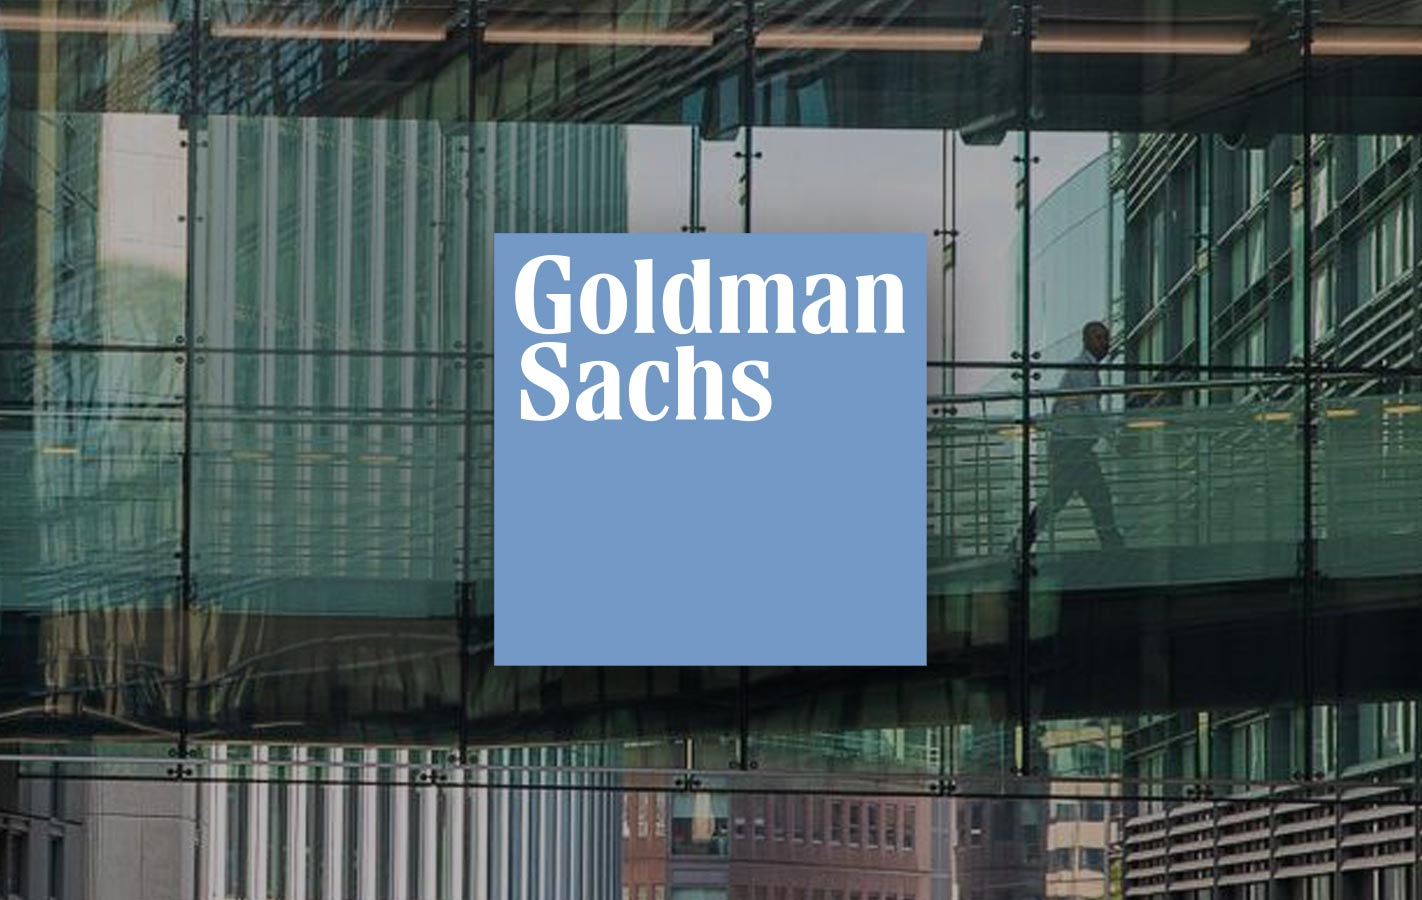 Goldman Sachs Q1 Earnings Call Overview